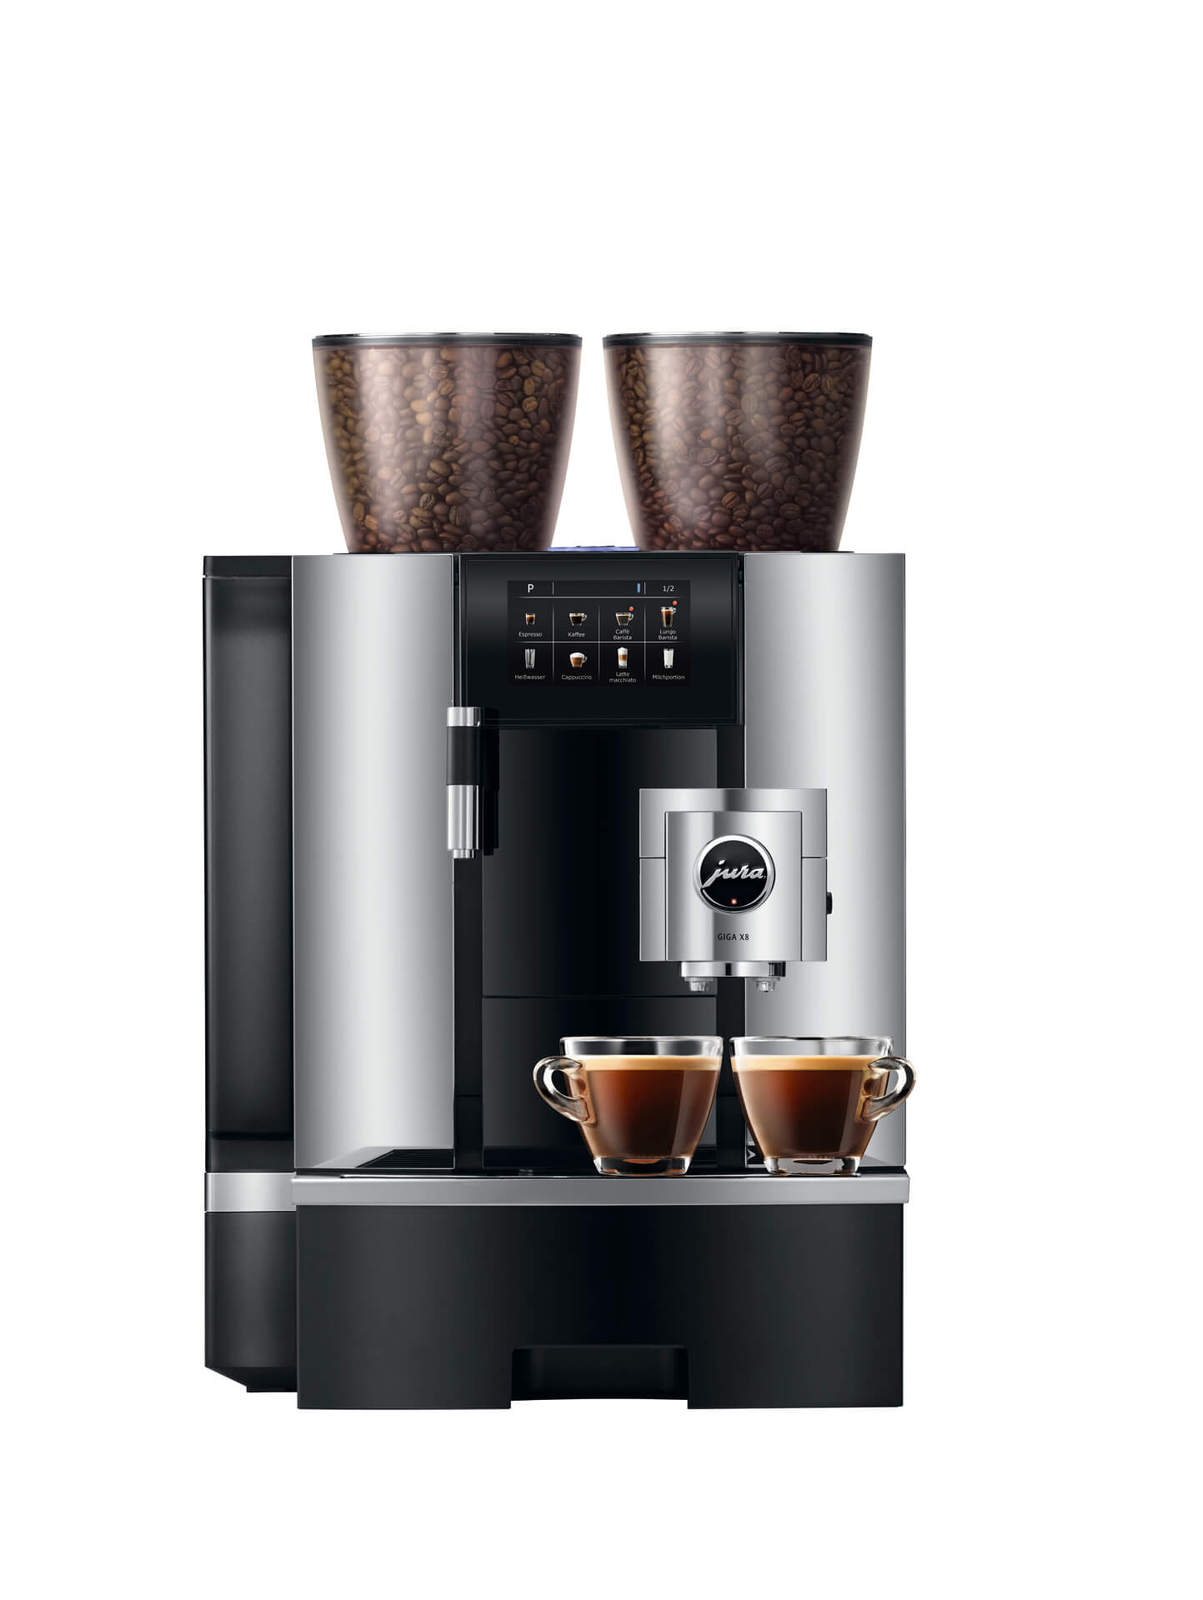 Jura Giga X8 Generation 2 Commercial Coffee Machine for the Office